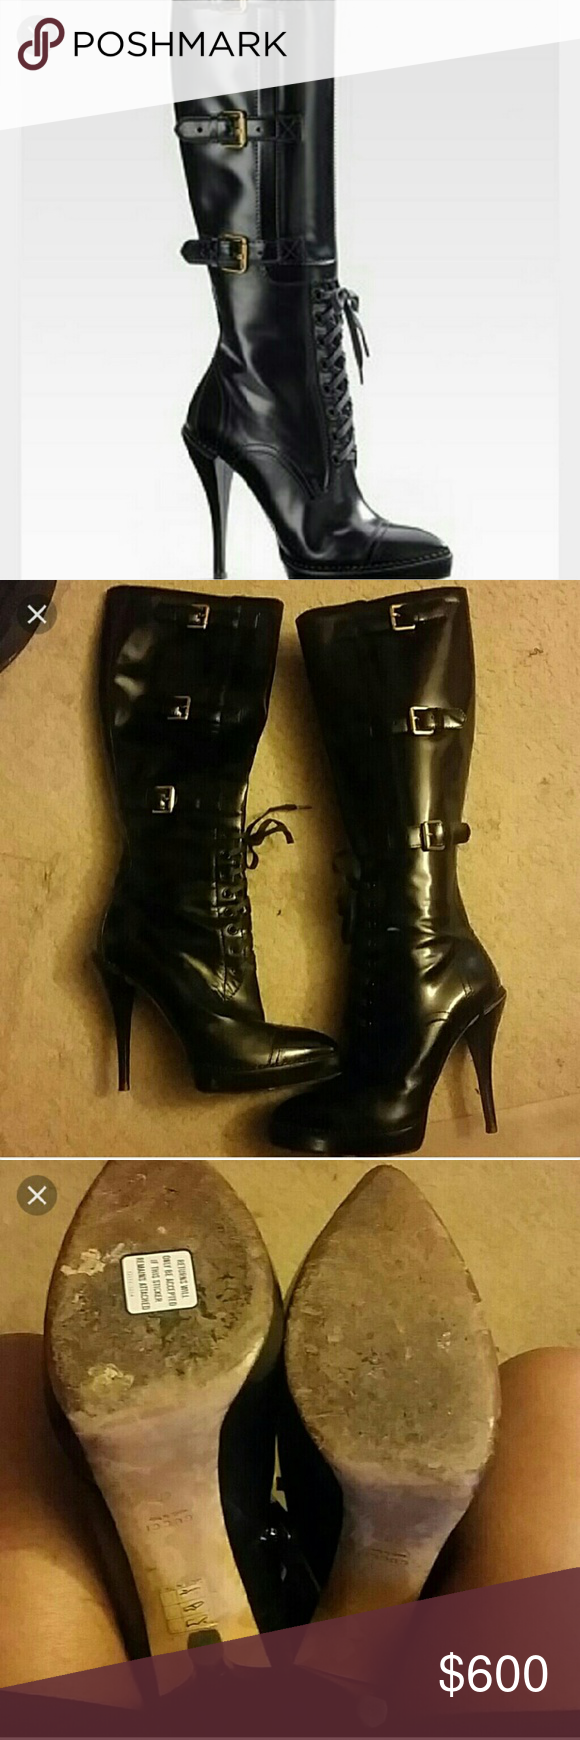 Gucci black bondage badazz boots Preowned...this is the badest boot Gucci has ever made!!! Several of my model bf's own this boot...all real leather..platform. ..size 40 European so know your Gucci size b4 buying...words can't explain the badassness of this boot!!! Fits best 9.5 but know ur size Gucci Shoes Heeled Boots